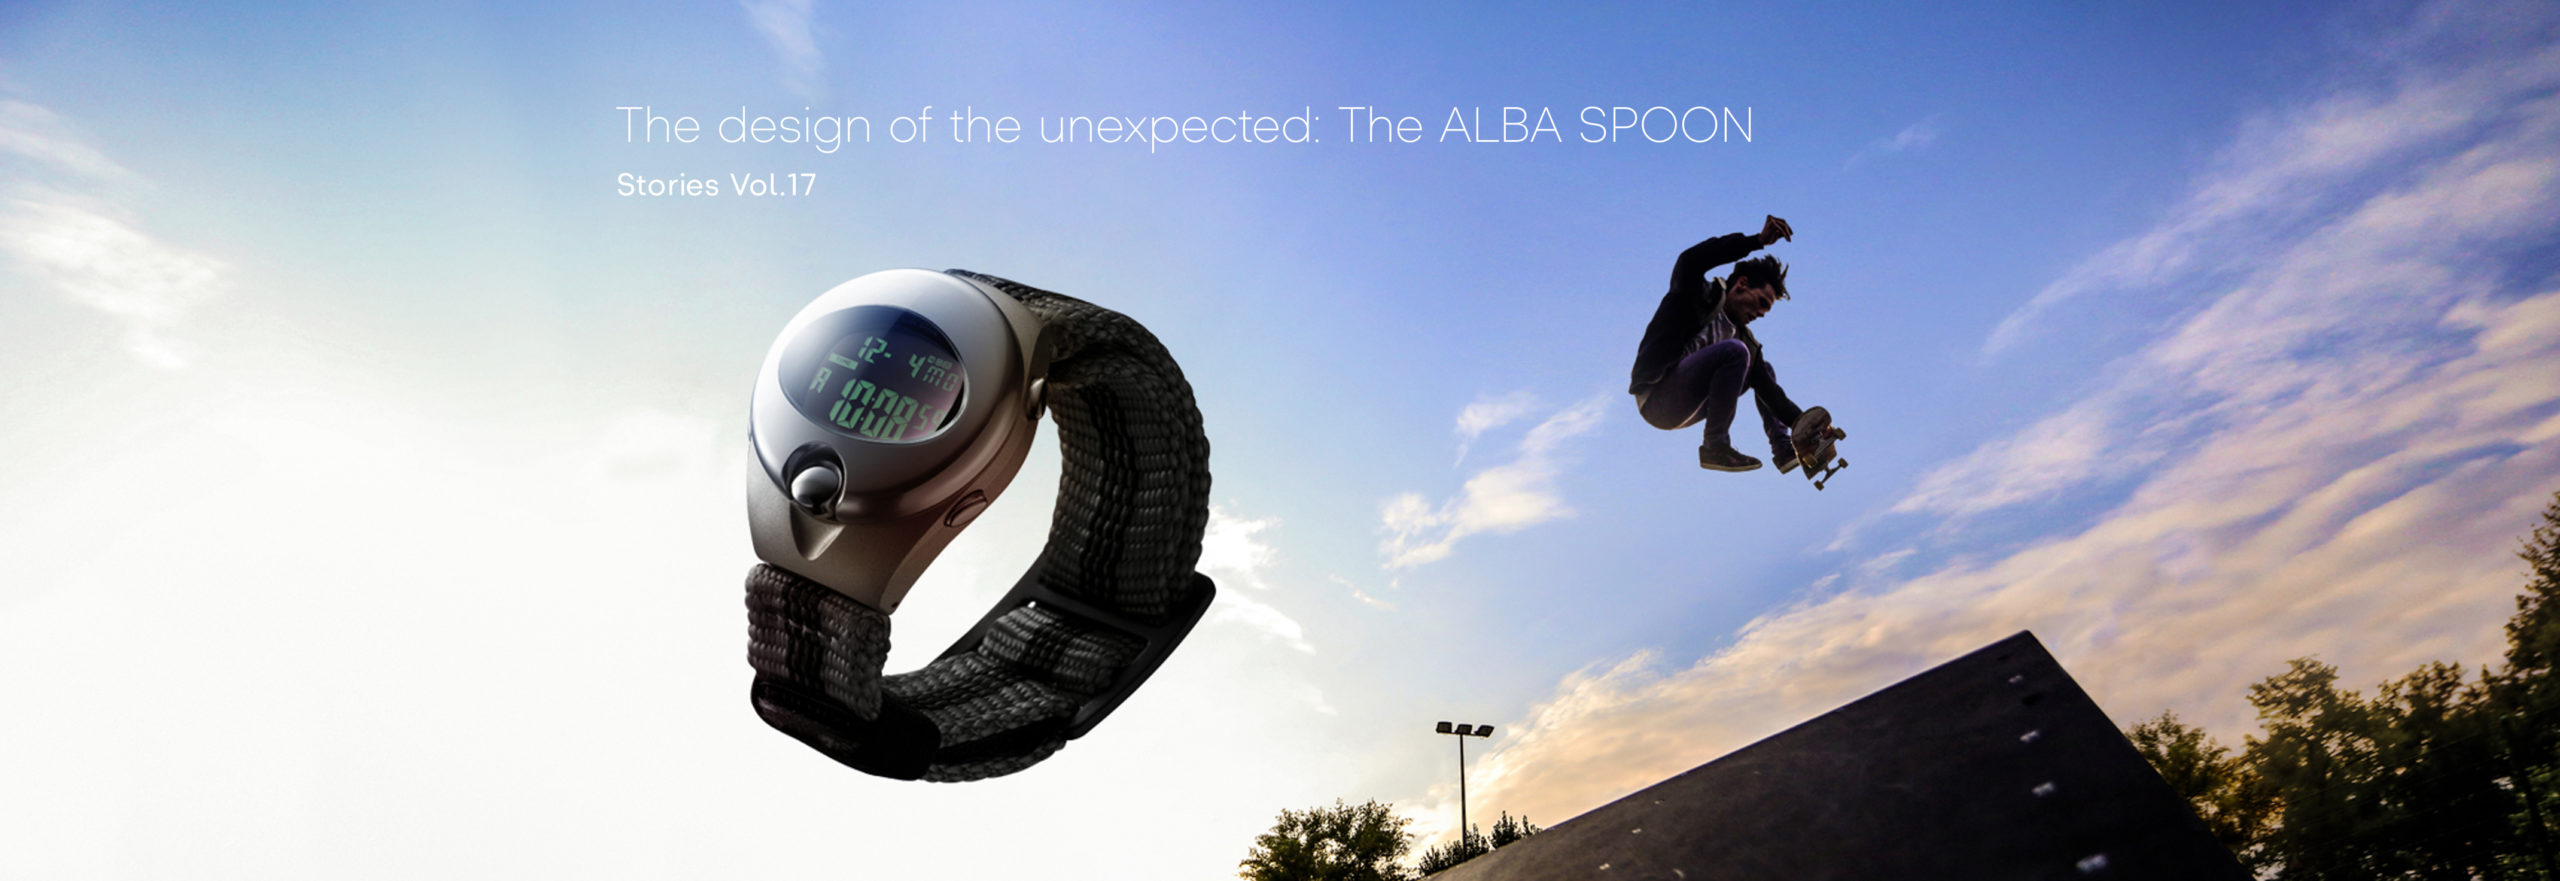 Vol.17 The design of the unexpected: The ALBA SPOON